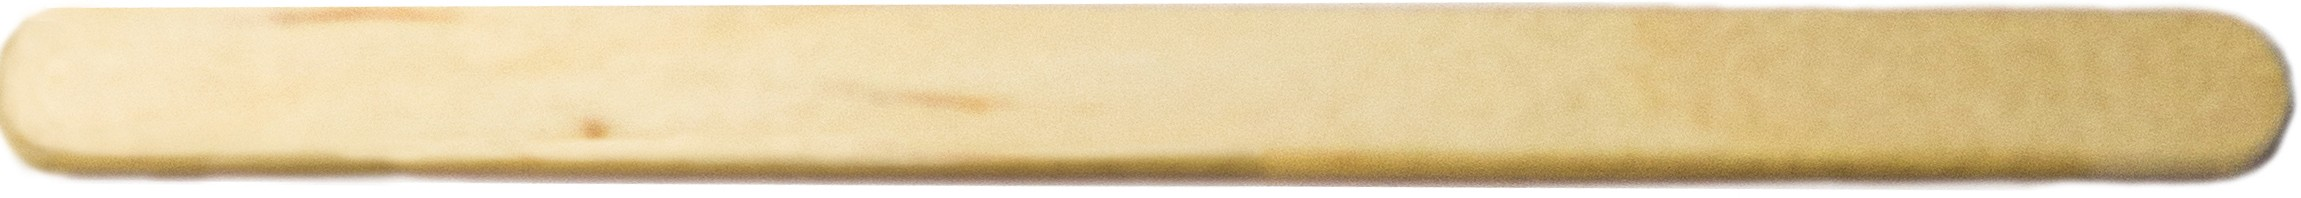 "4 1/2"" Banded Barista Coffee Stirrers Rounded Ends Case of 200 bands/50ct = 10,000ct (Item# ASO910BA)"